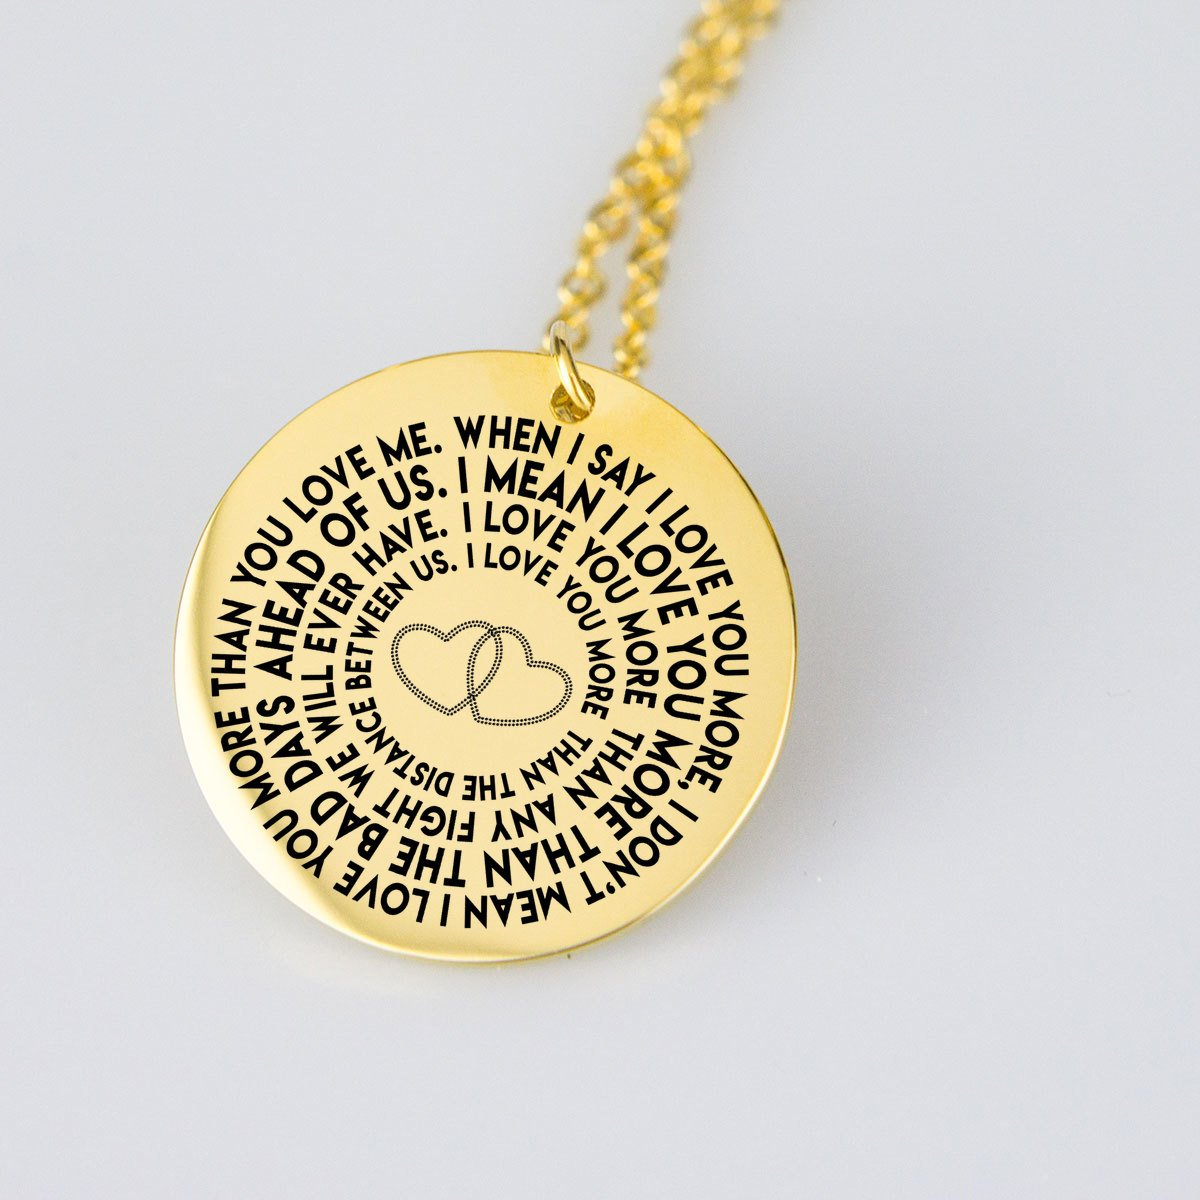 I love you & I mean it-pendant-Hearts and Gifts